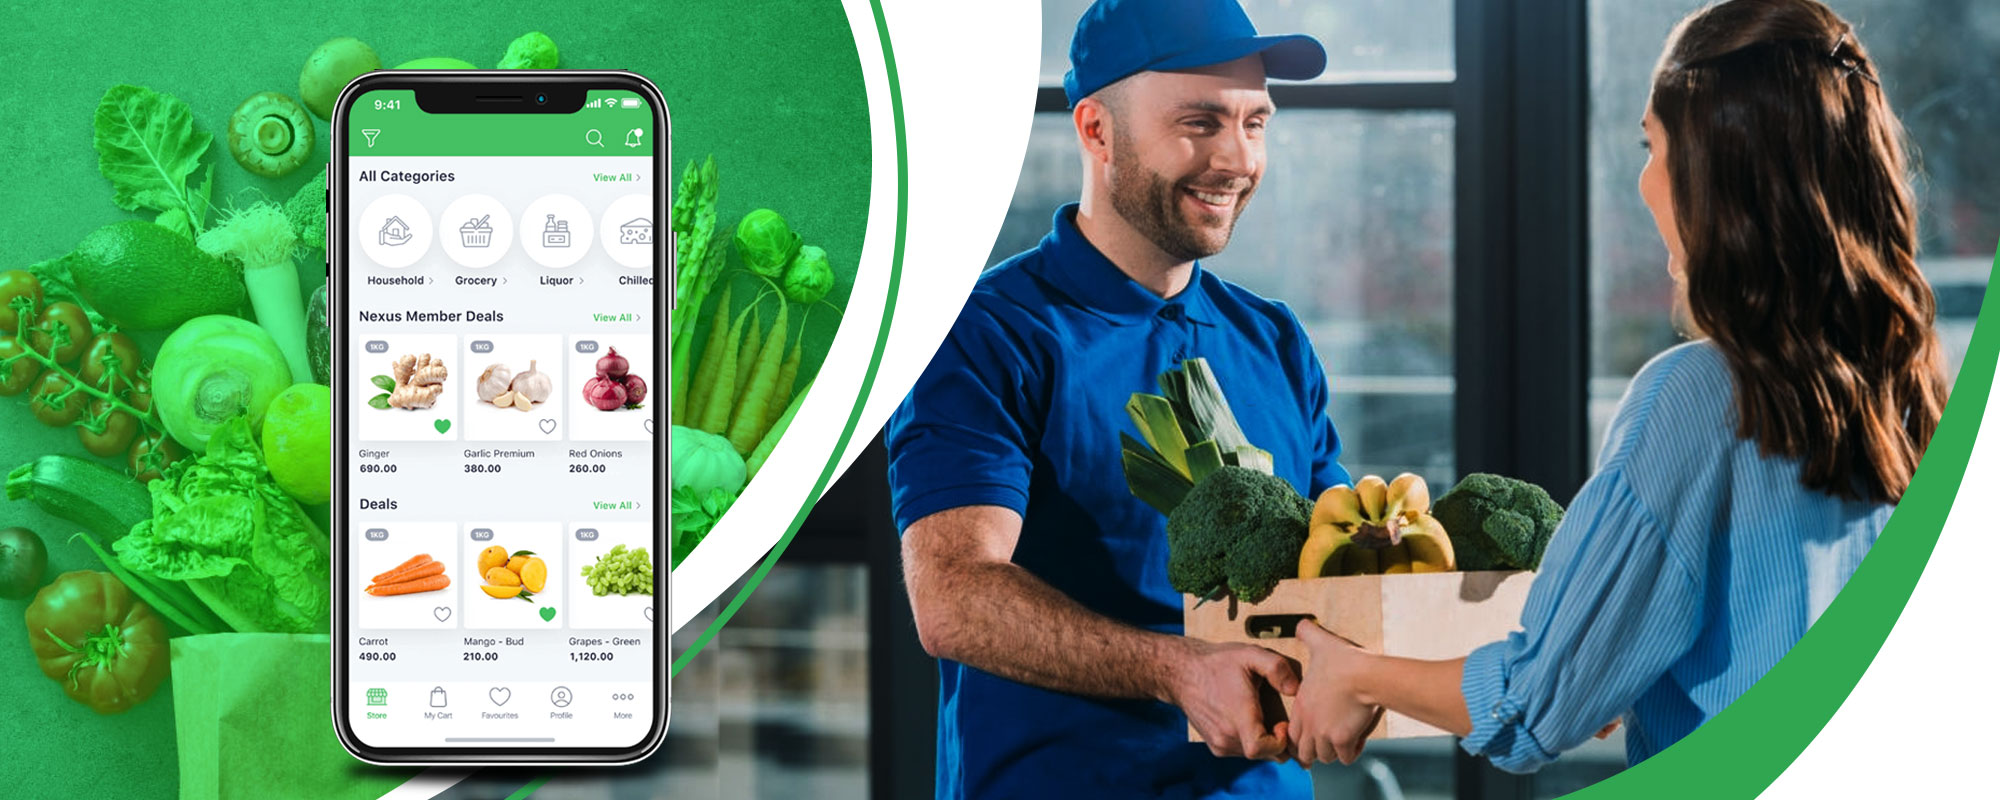 Launch app like Instacart